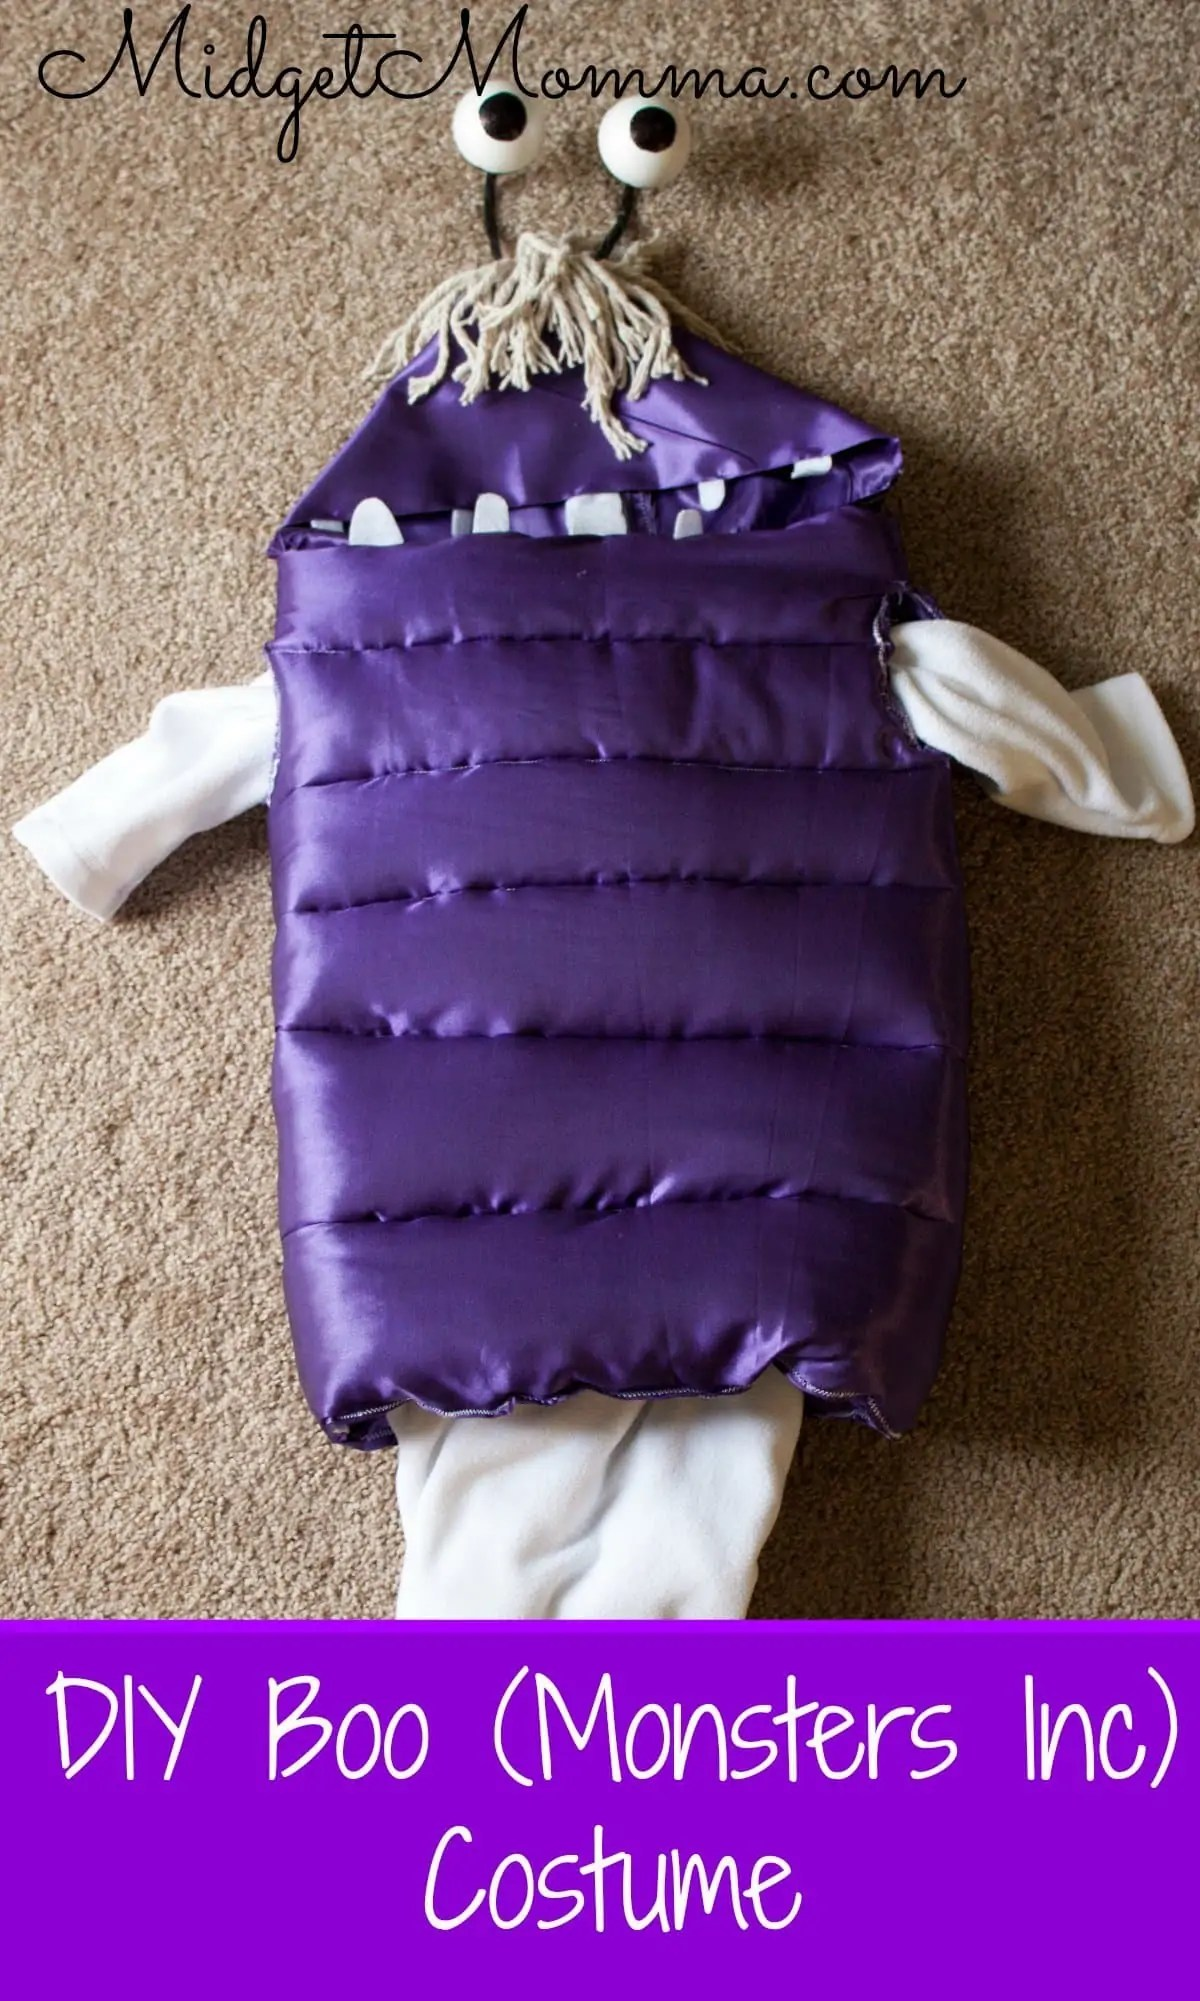 Diy Boo Monsters Inc Costume Disney In Your Day